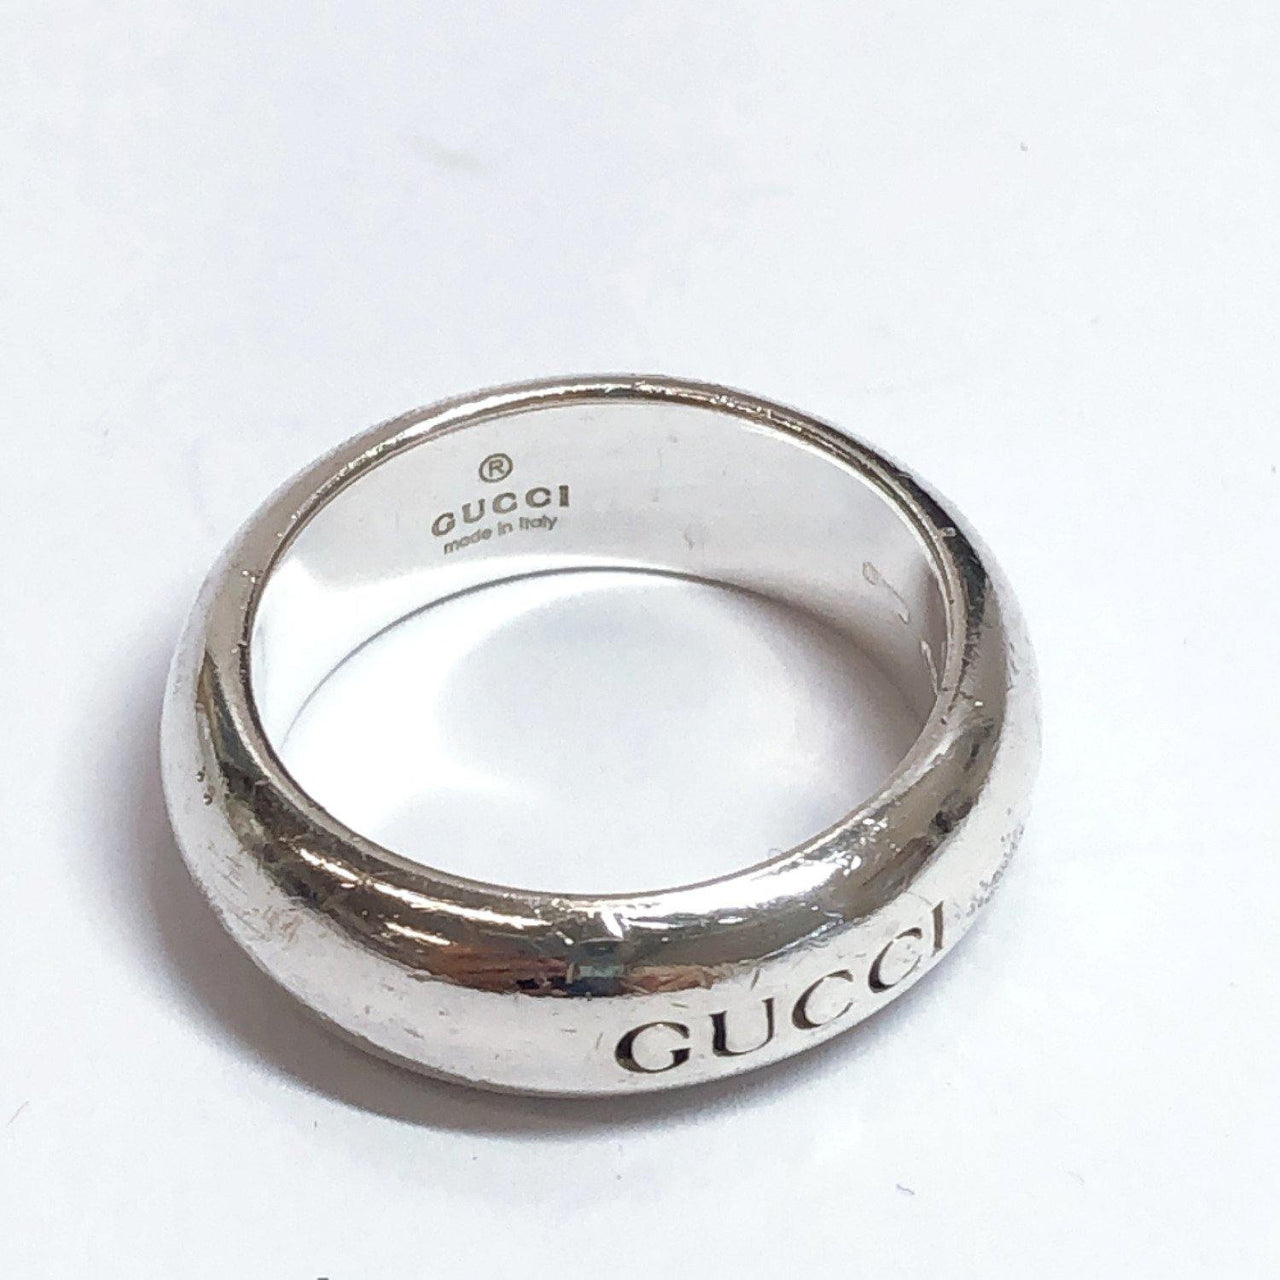 GUCCI Ring logo Silver925 9 Silver Women Used - JP-BRANDS.com